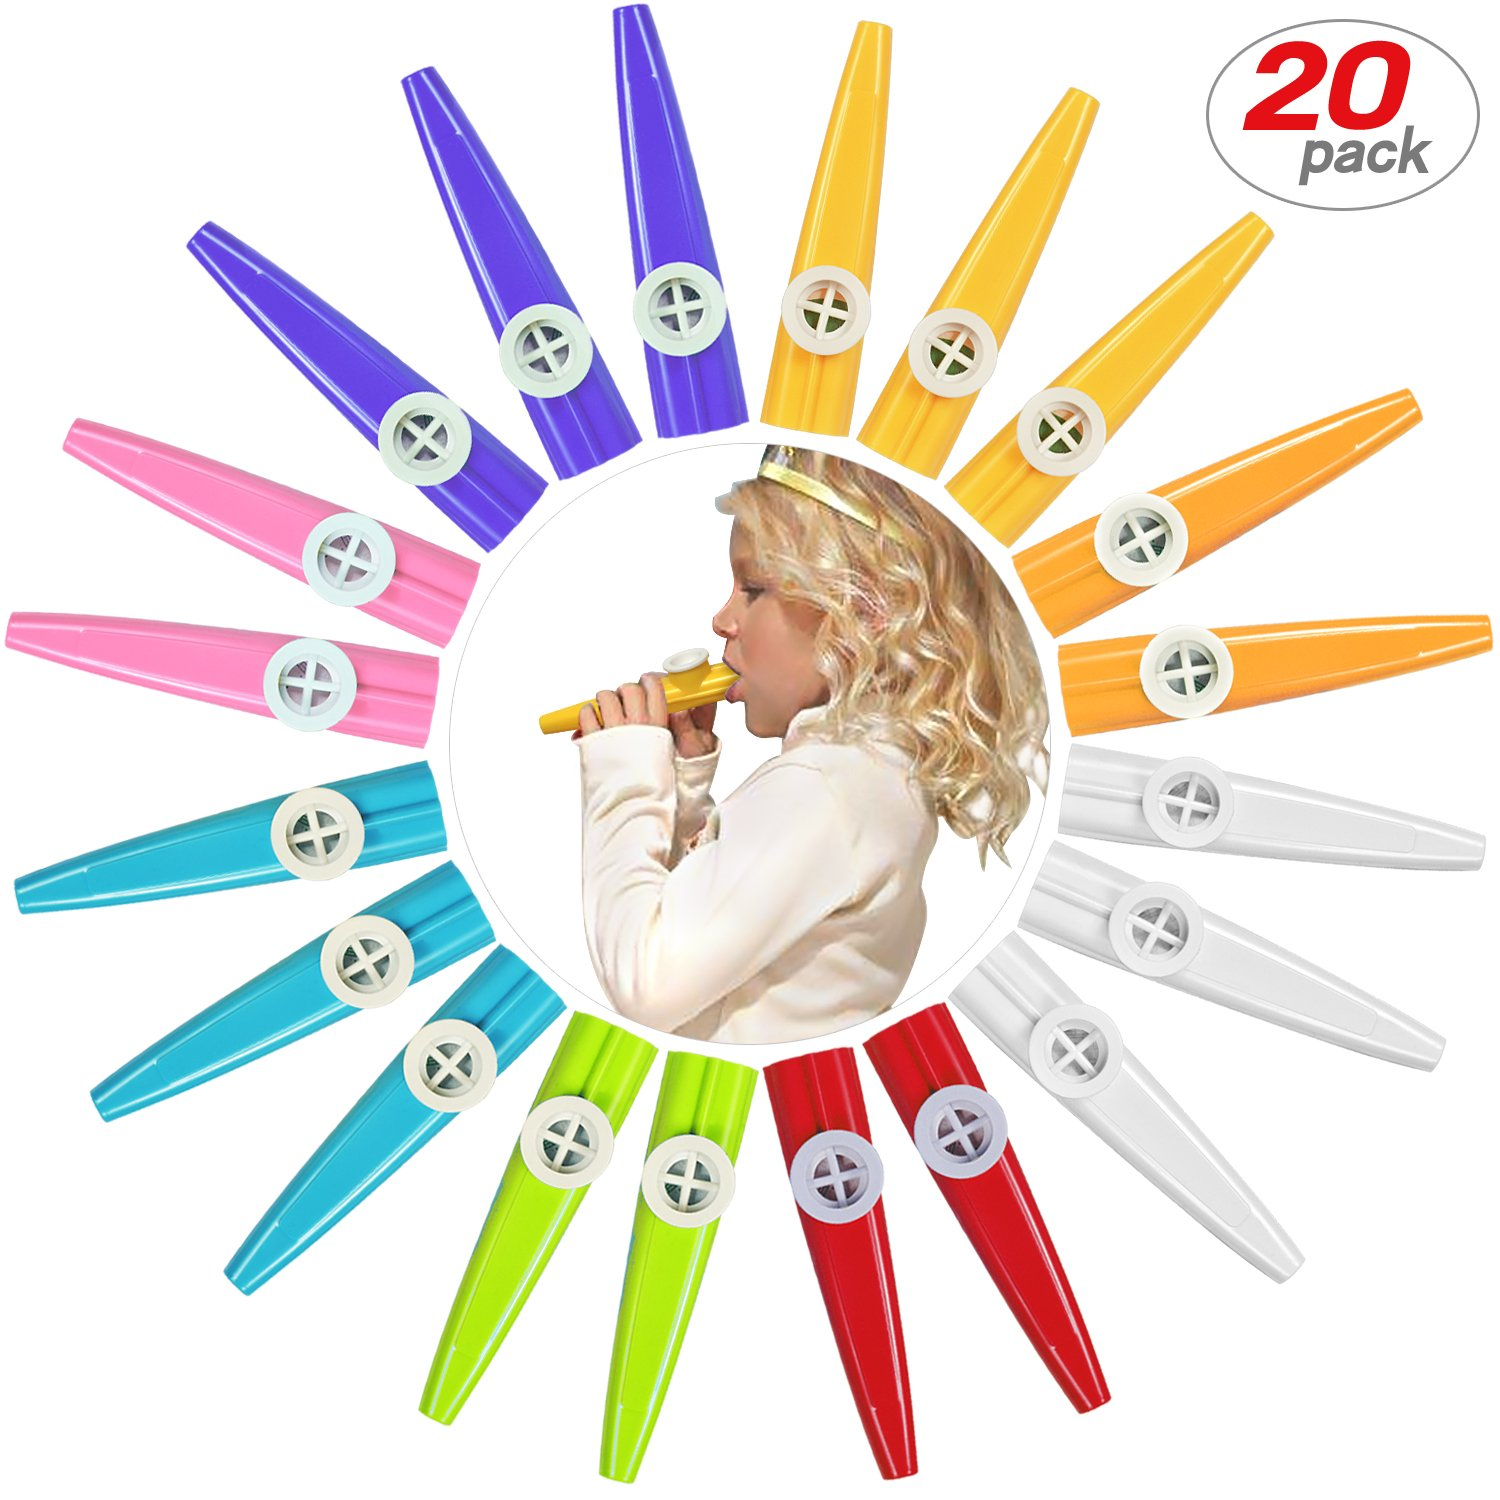 48 Pack Plastic Kazoos Musical Instruments With 48pcs Kazoo Flute Diaphragms Assorted Color Party Favors Gifts Kazoo Kid Random 8 Colors New Teko